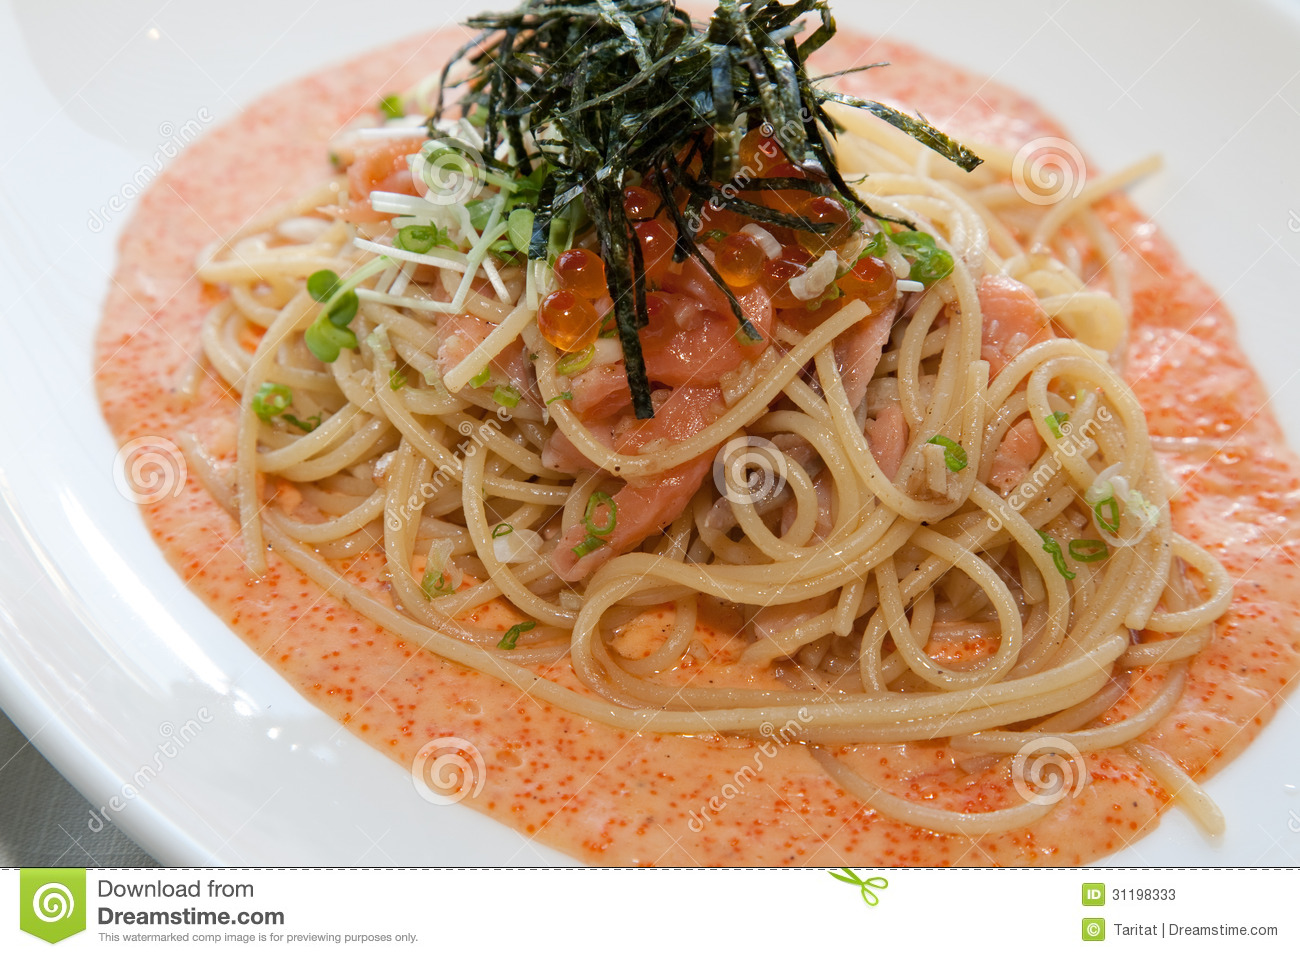 Japanese italian fusion food stock photos image 31198333 for Akane japanese fusion cuisine